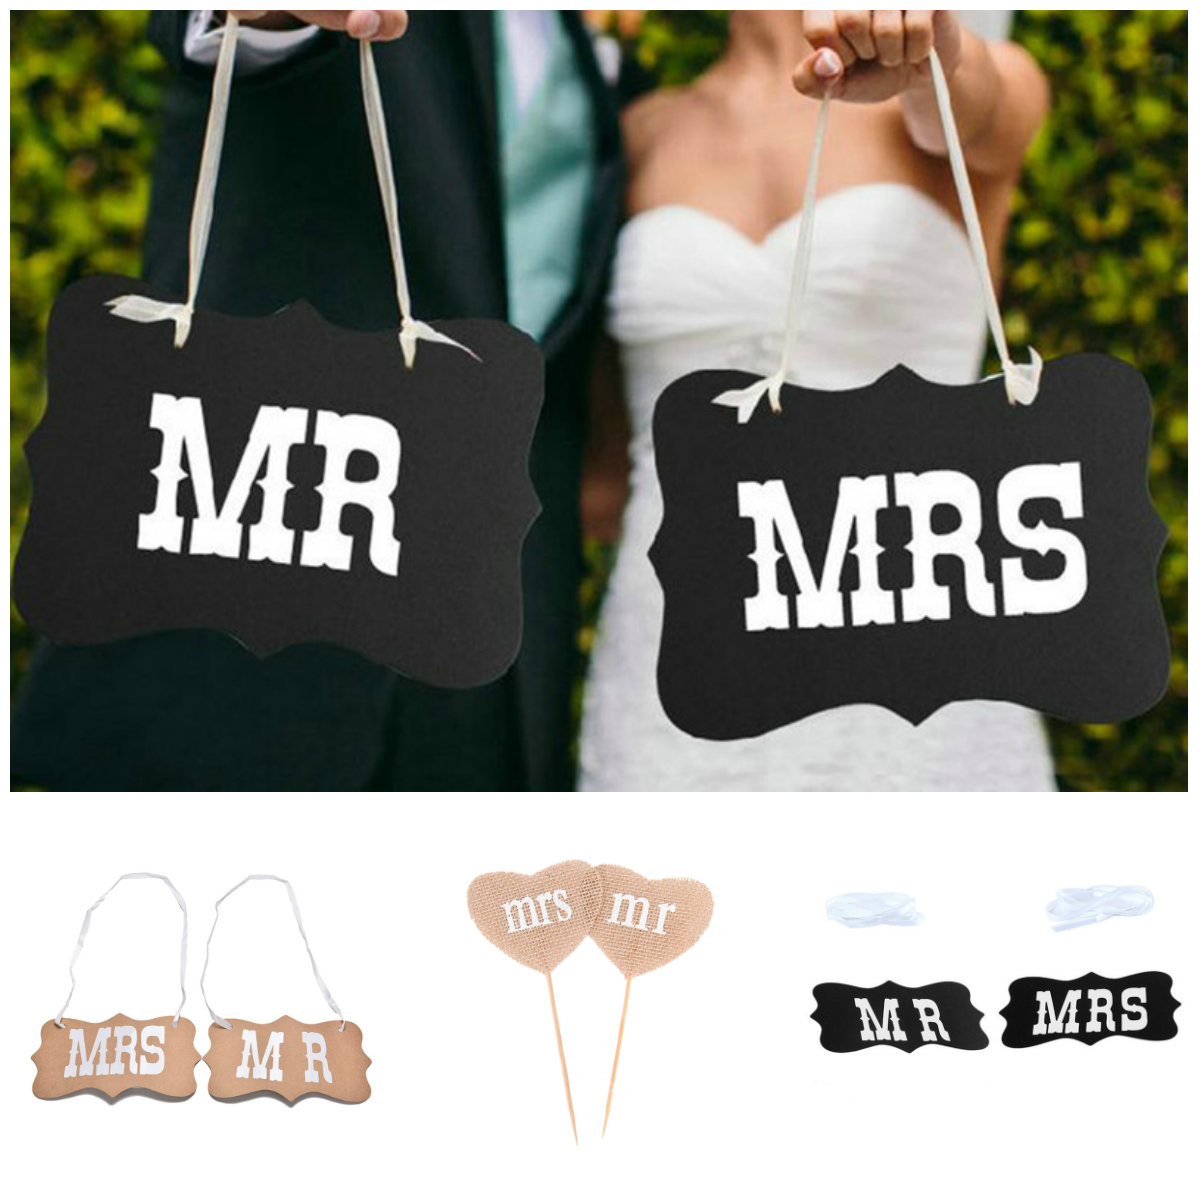 1set DIY Black Mr Mrs Paper Board+Ribbon Sign Photo Booth Props Wedding decoration Party Favor photocall for weddings